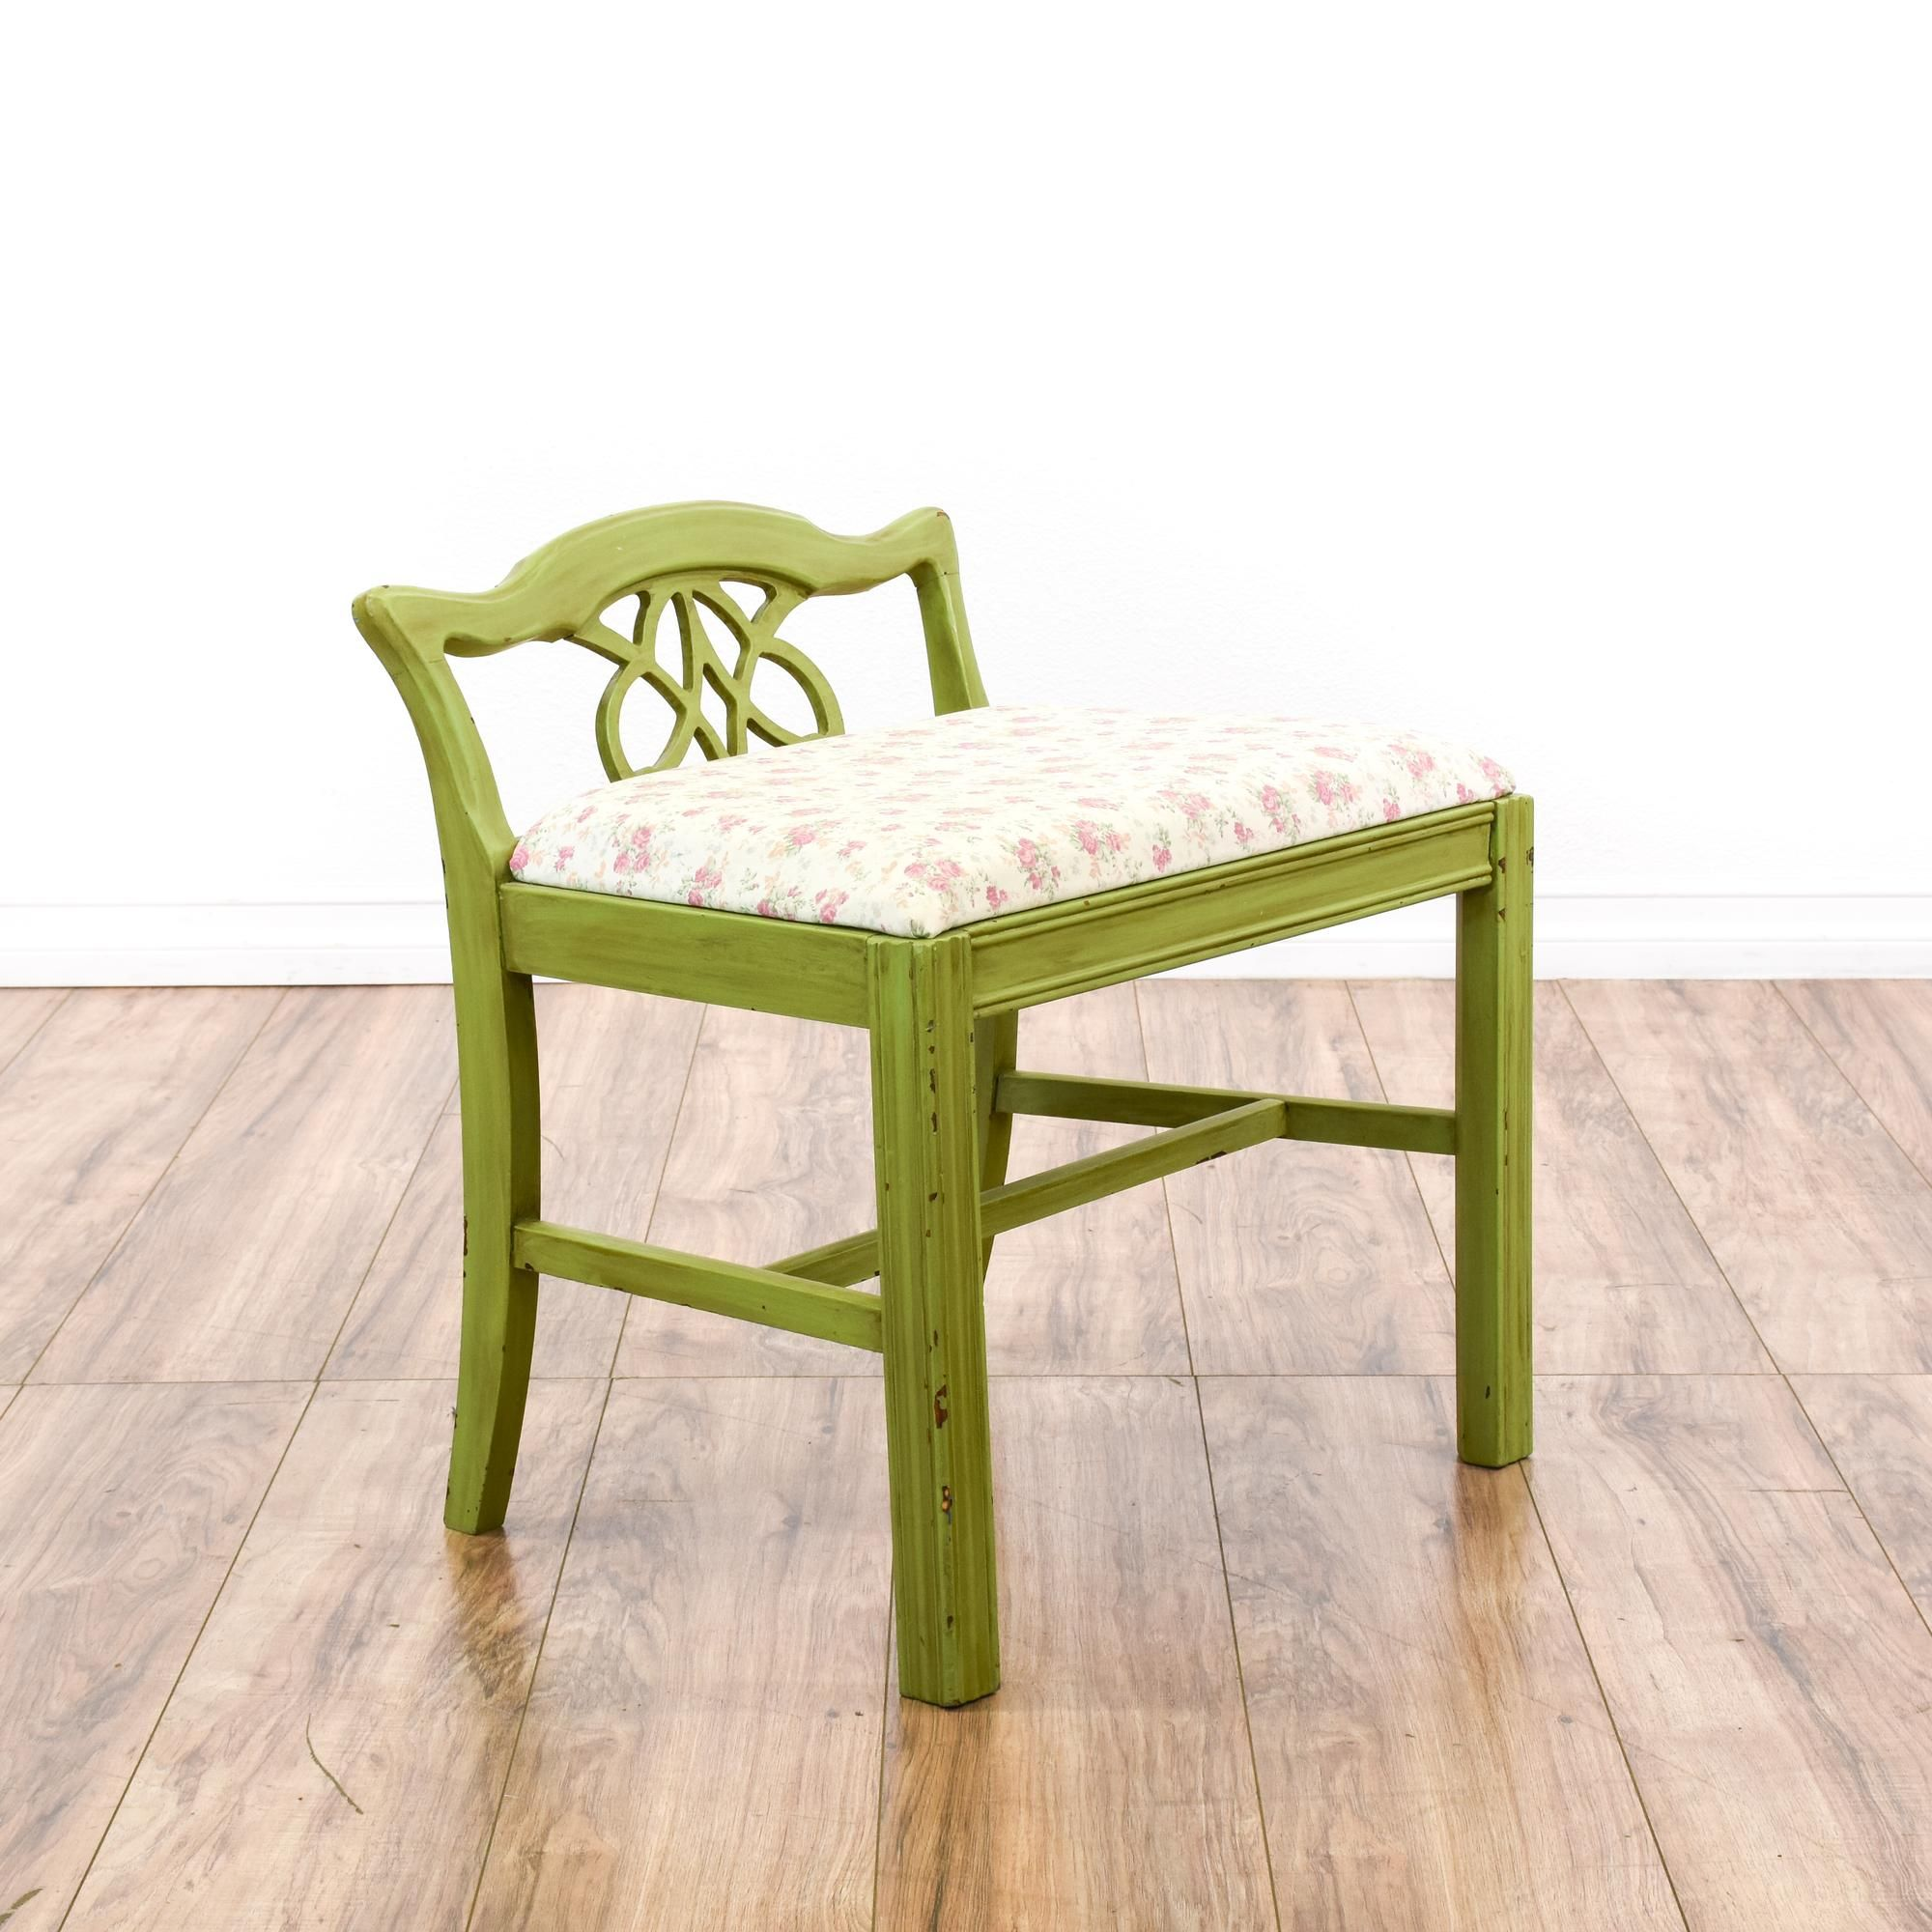 This Shabby Chic Vanity Stool Is Featured In A Solid Wood With A Distressed Light Green Paint Finish This Small Vintage Furniture Vintage Chairs Vanity Stool